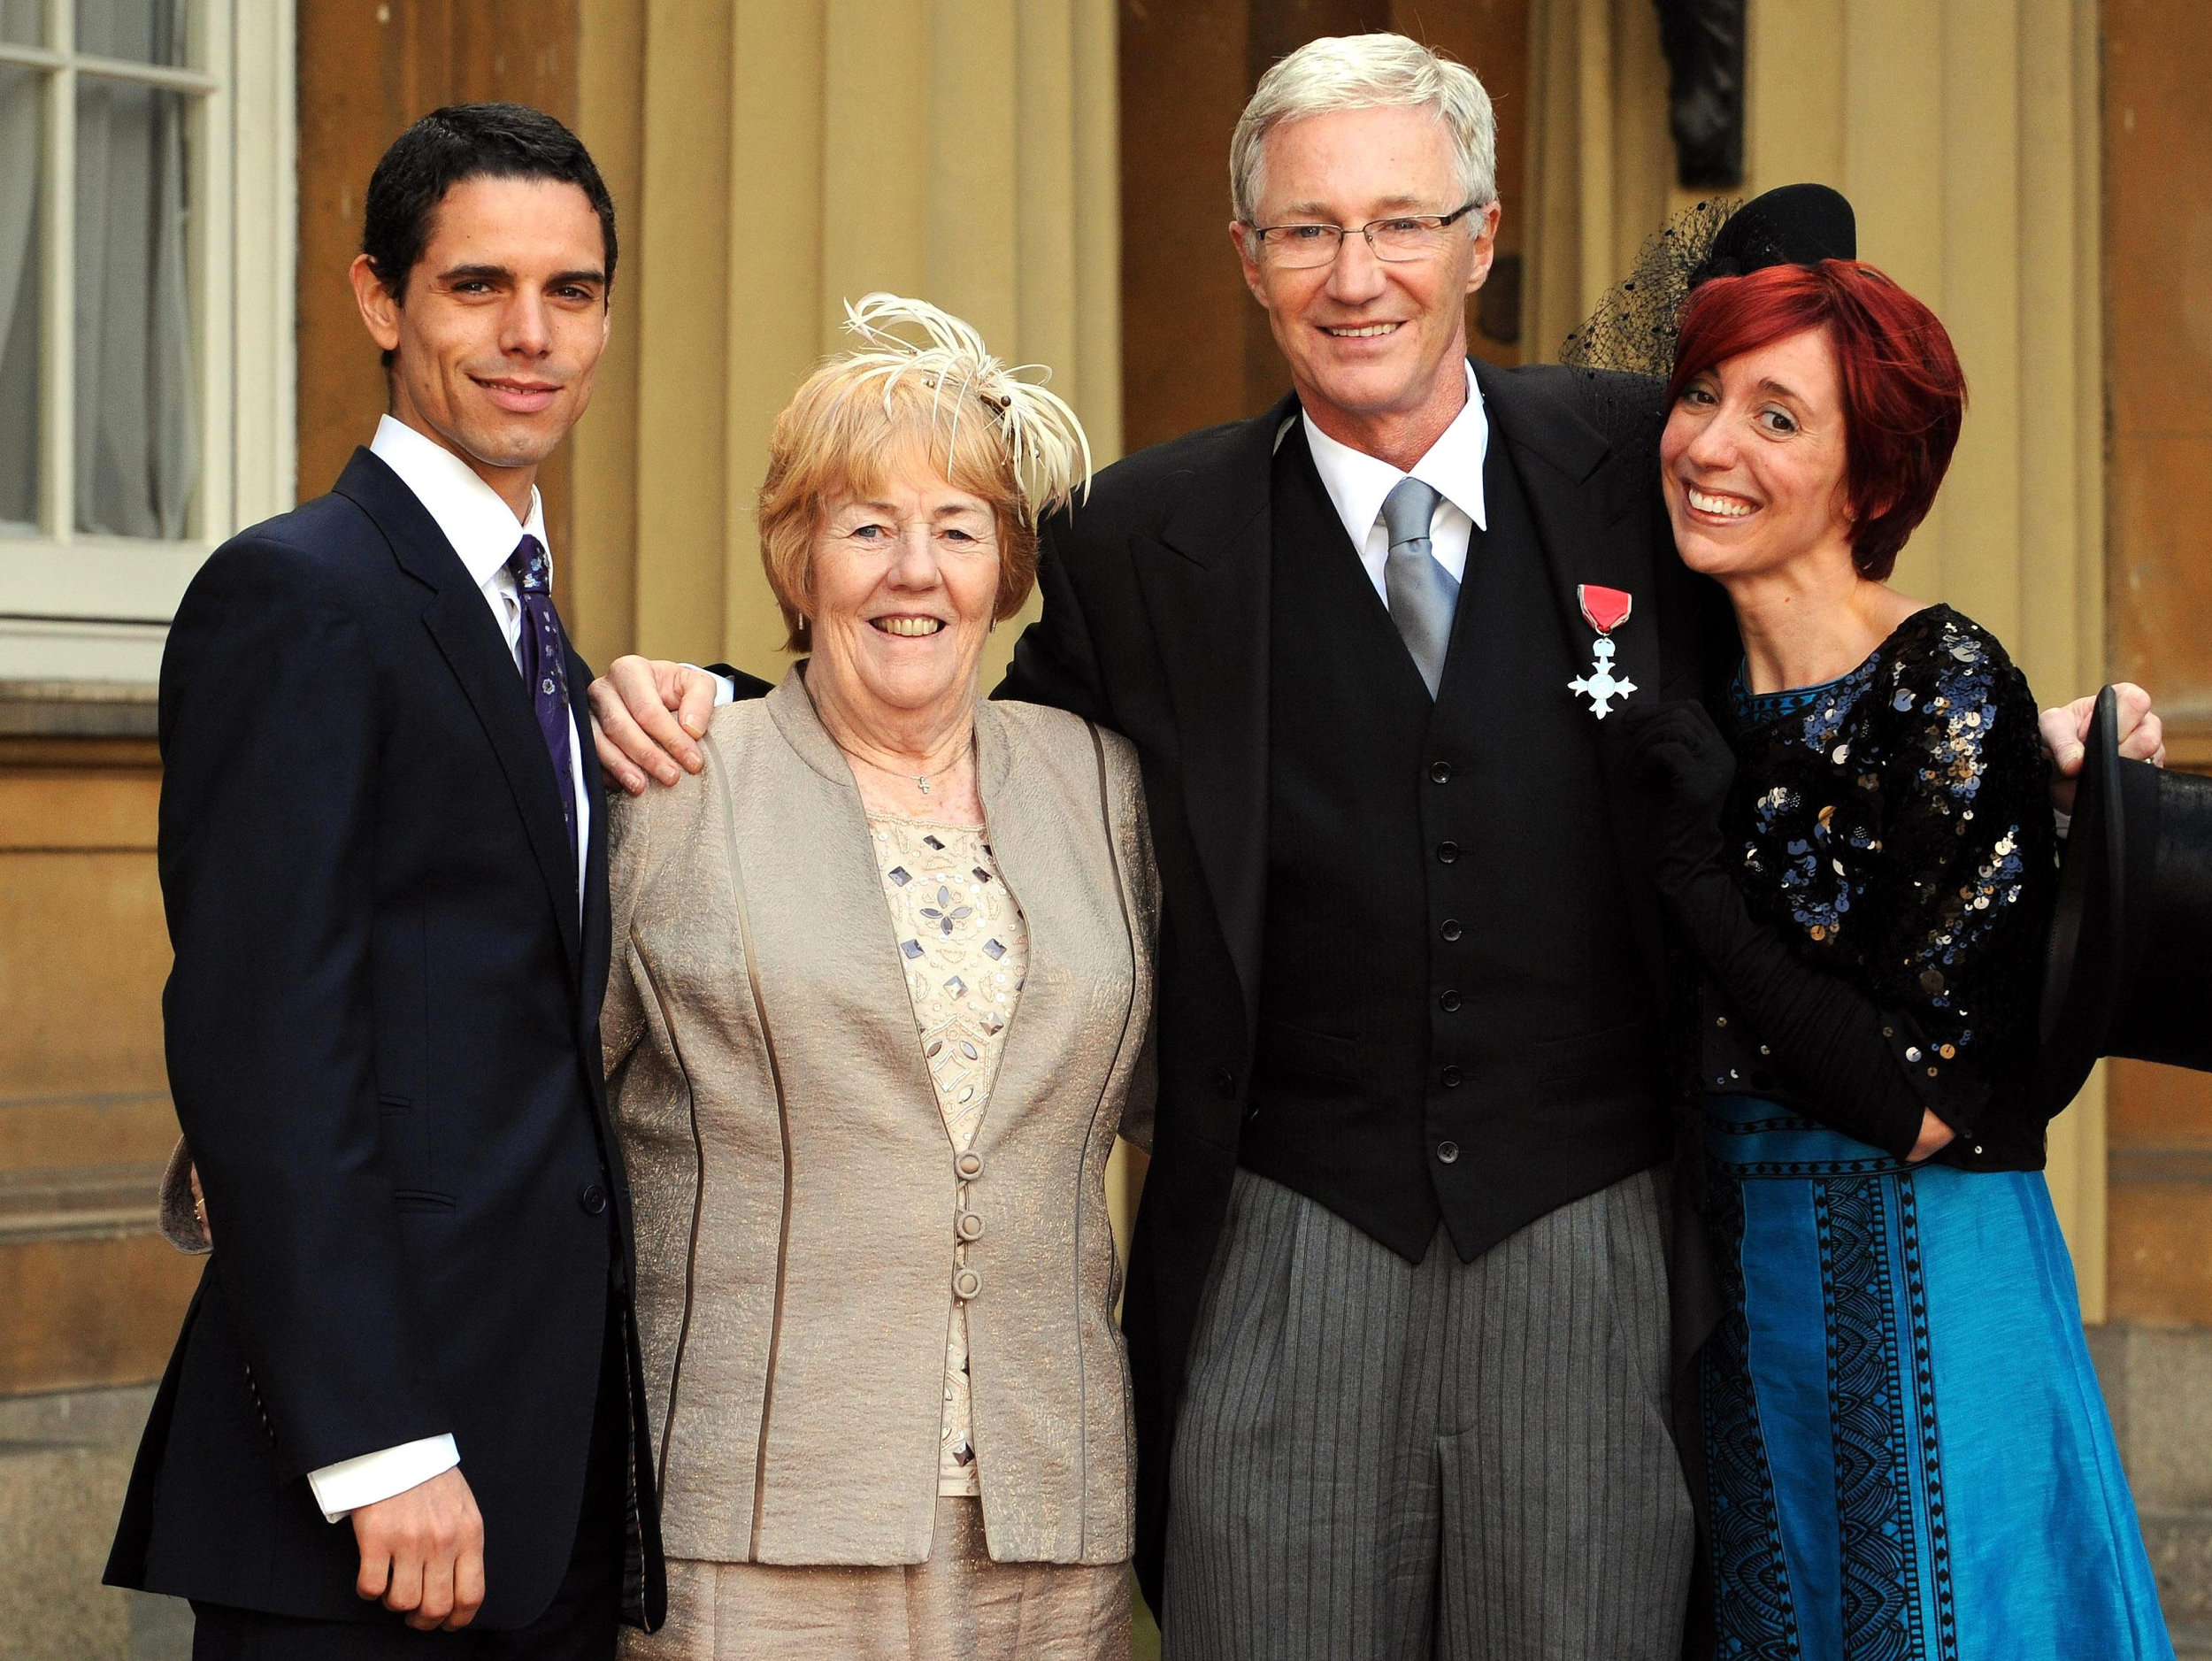 Paul's partner, sister and daughter join him to collect his MBE